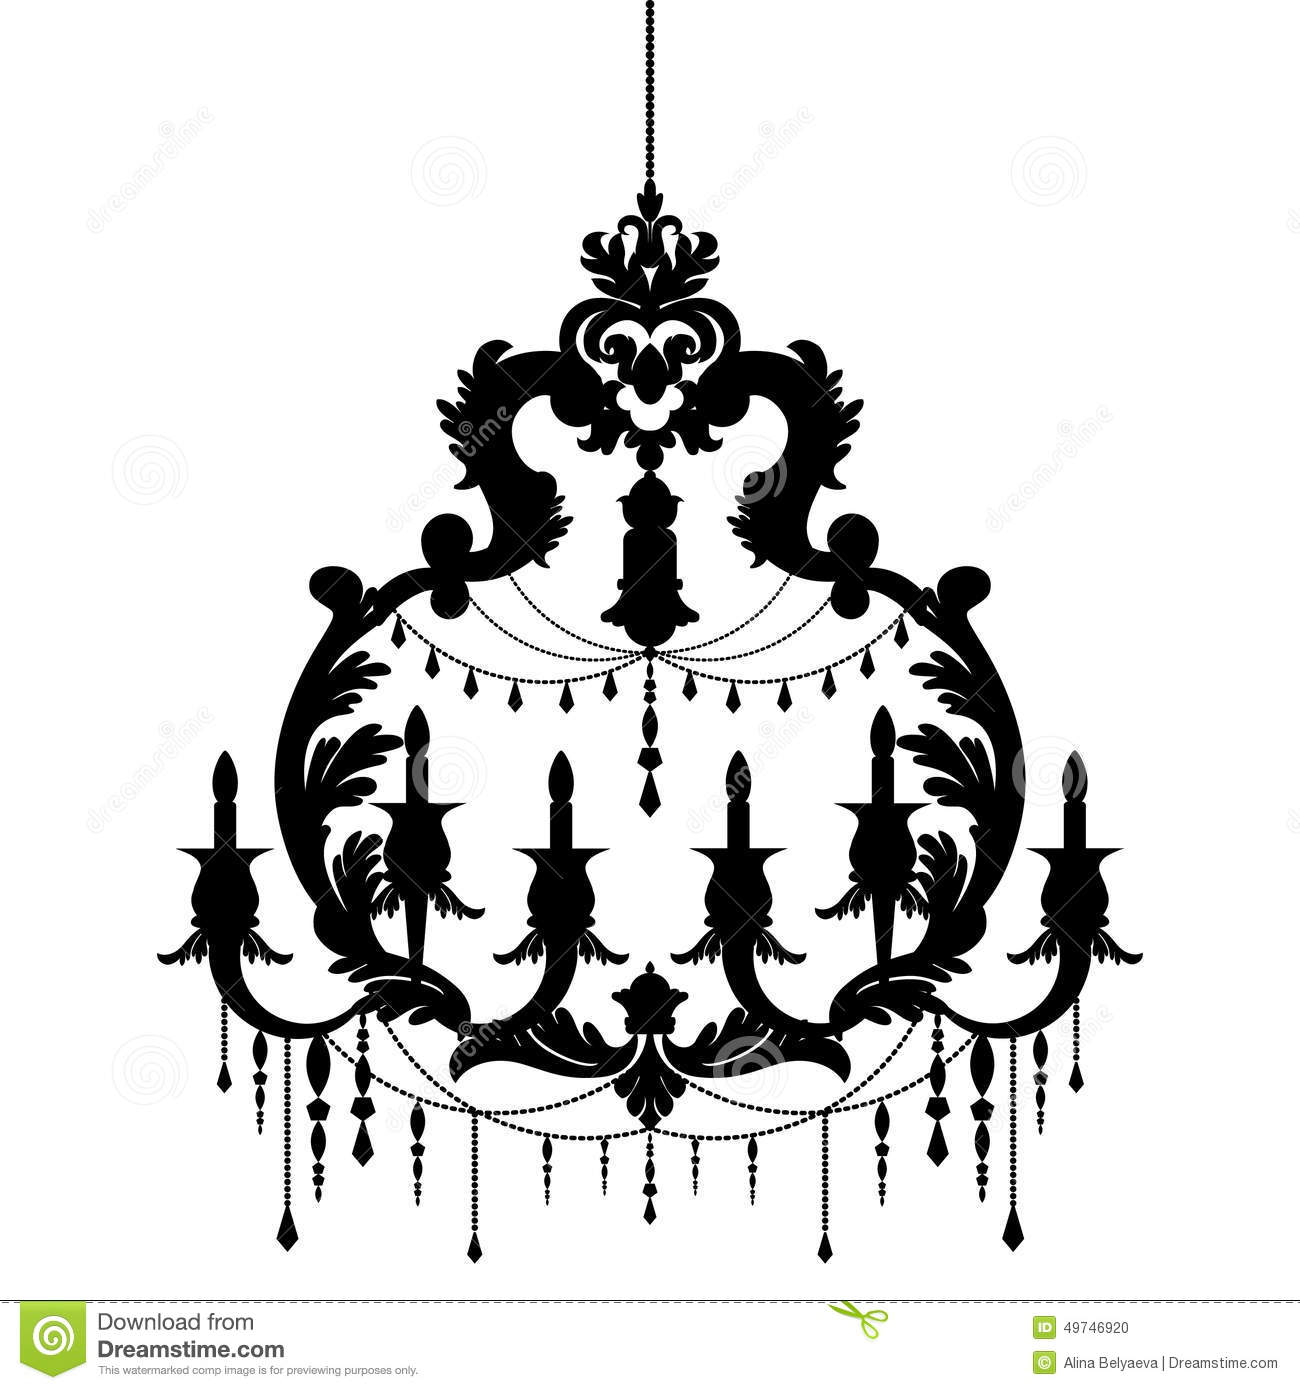 Chandelier silhouette isolated on white background stock vector chandelier silhouette isolated on white background elegance antique aloadofball Gallery